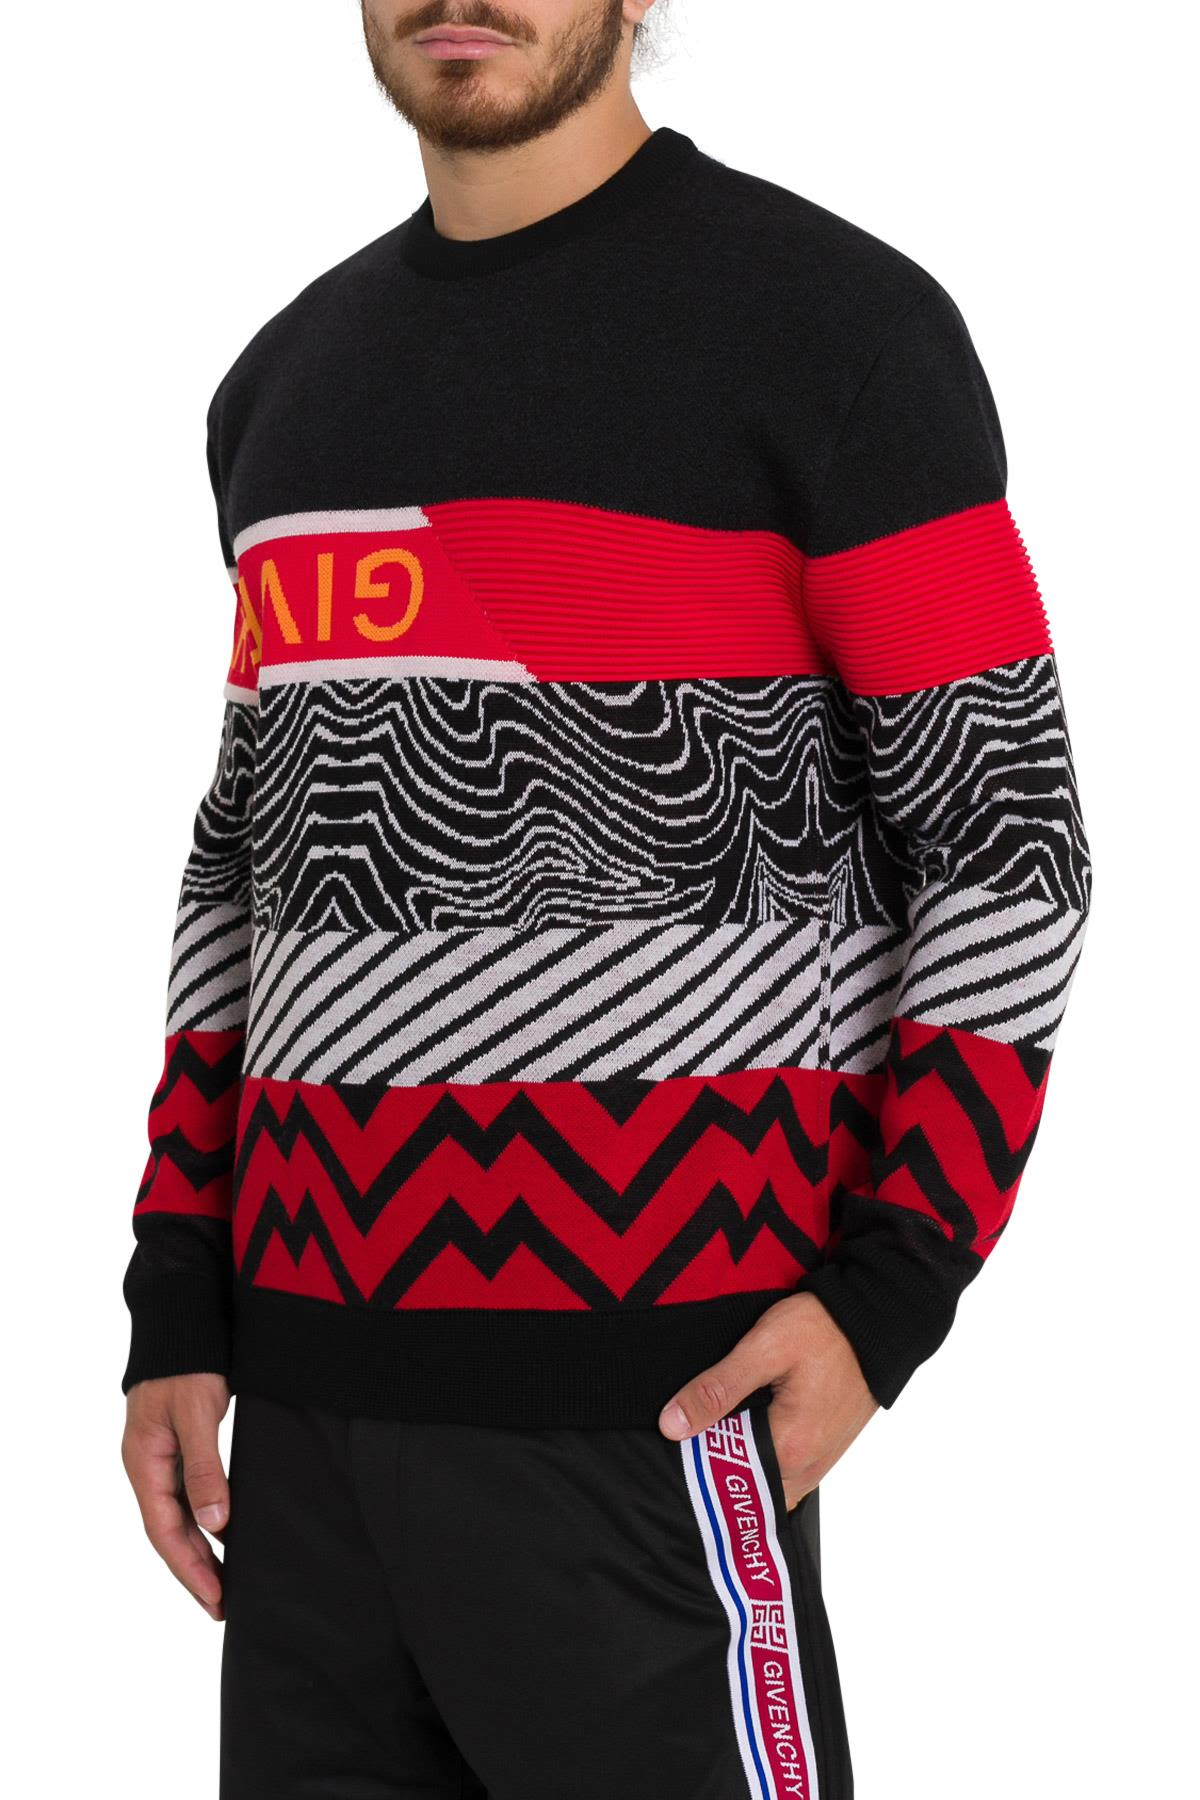 Givenchy Patchwork Jumper